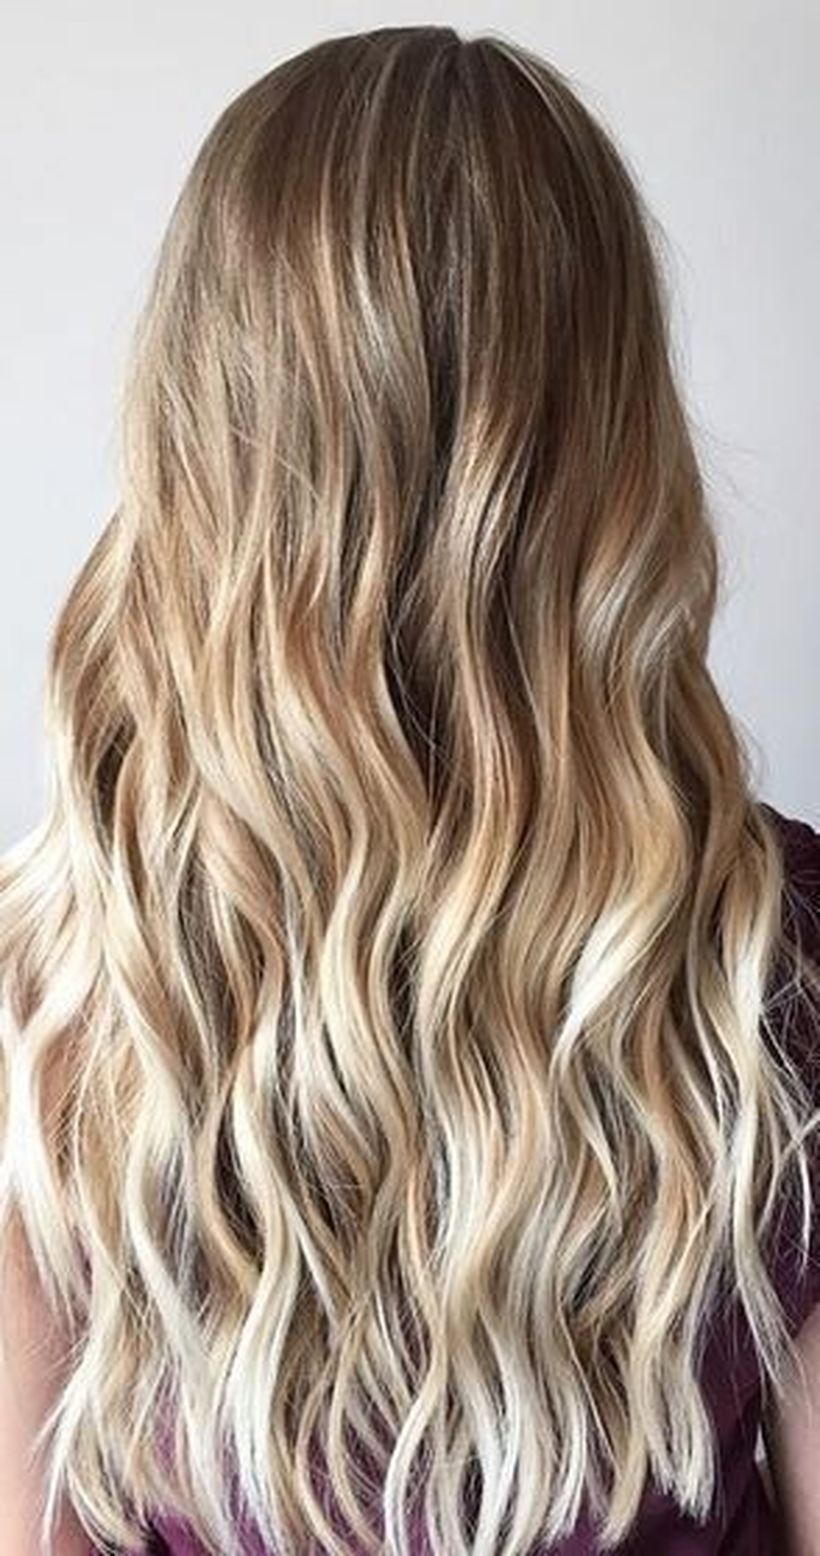 Best Hair Color Ideas In 2017 62 Fashion Best